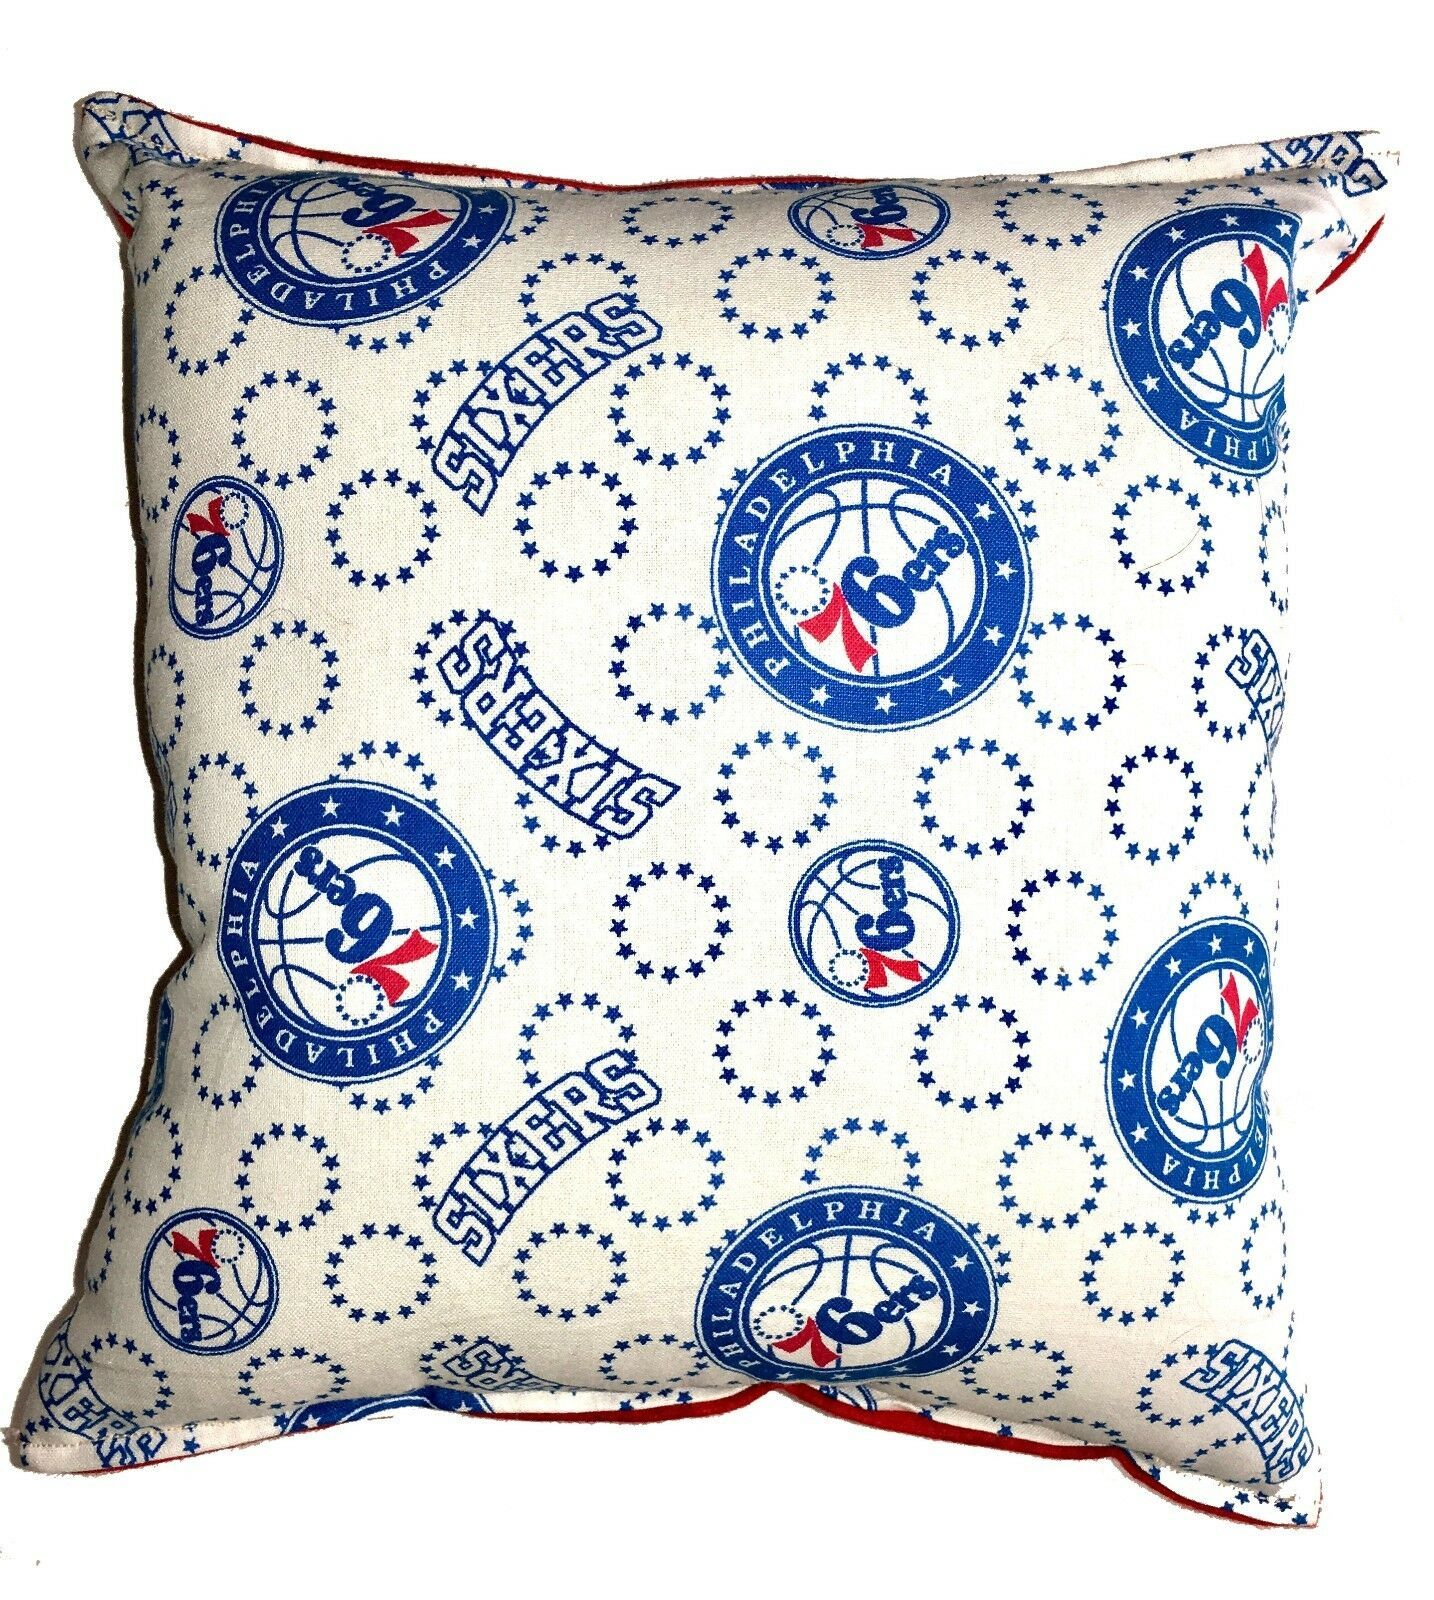 Primary image for 76ers Pillow Philadelphia Pillow NBA Handmade in USA 6 ers